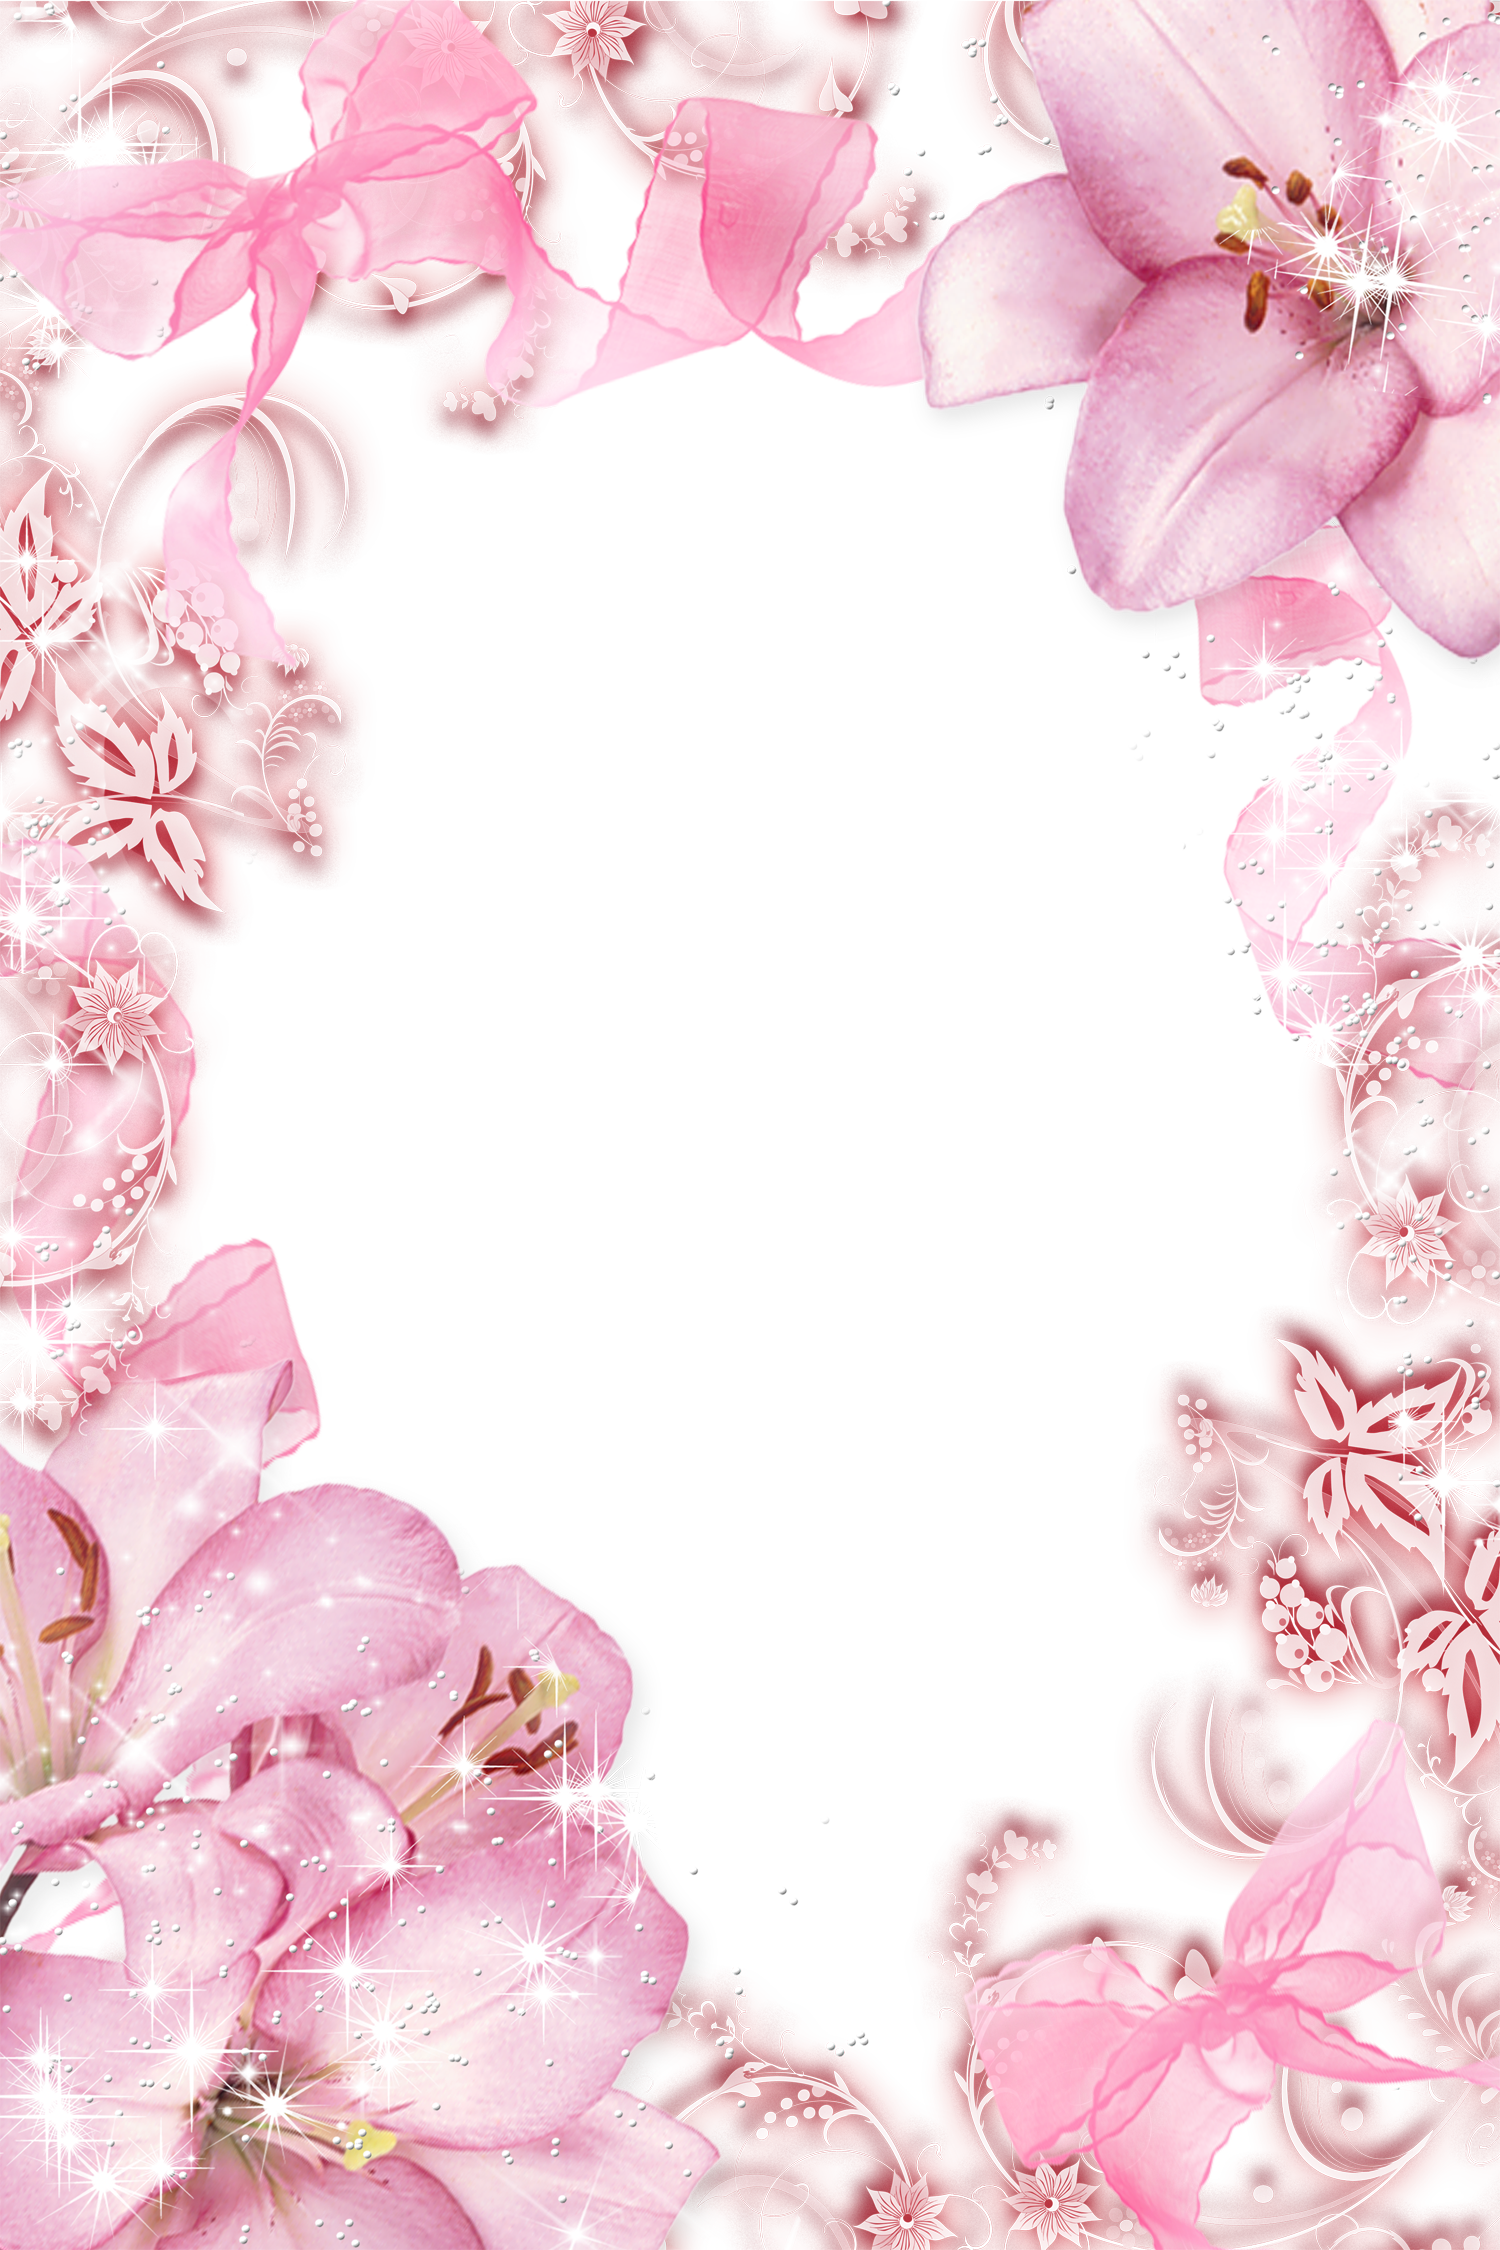 Vertical flower border clipart royalty free library Transparent Pink Flowers PNG Photo Frame | Wallpapers and more ... royalty free library